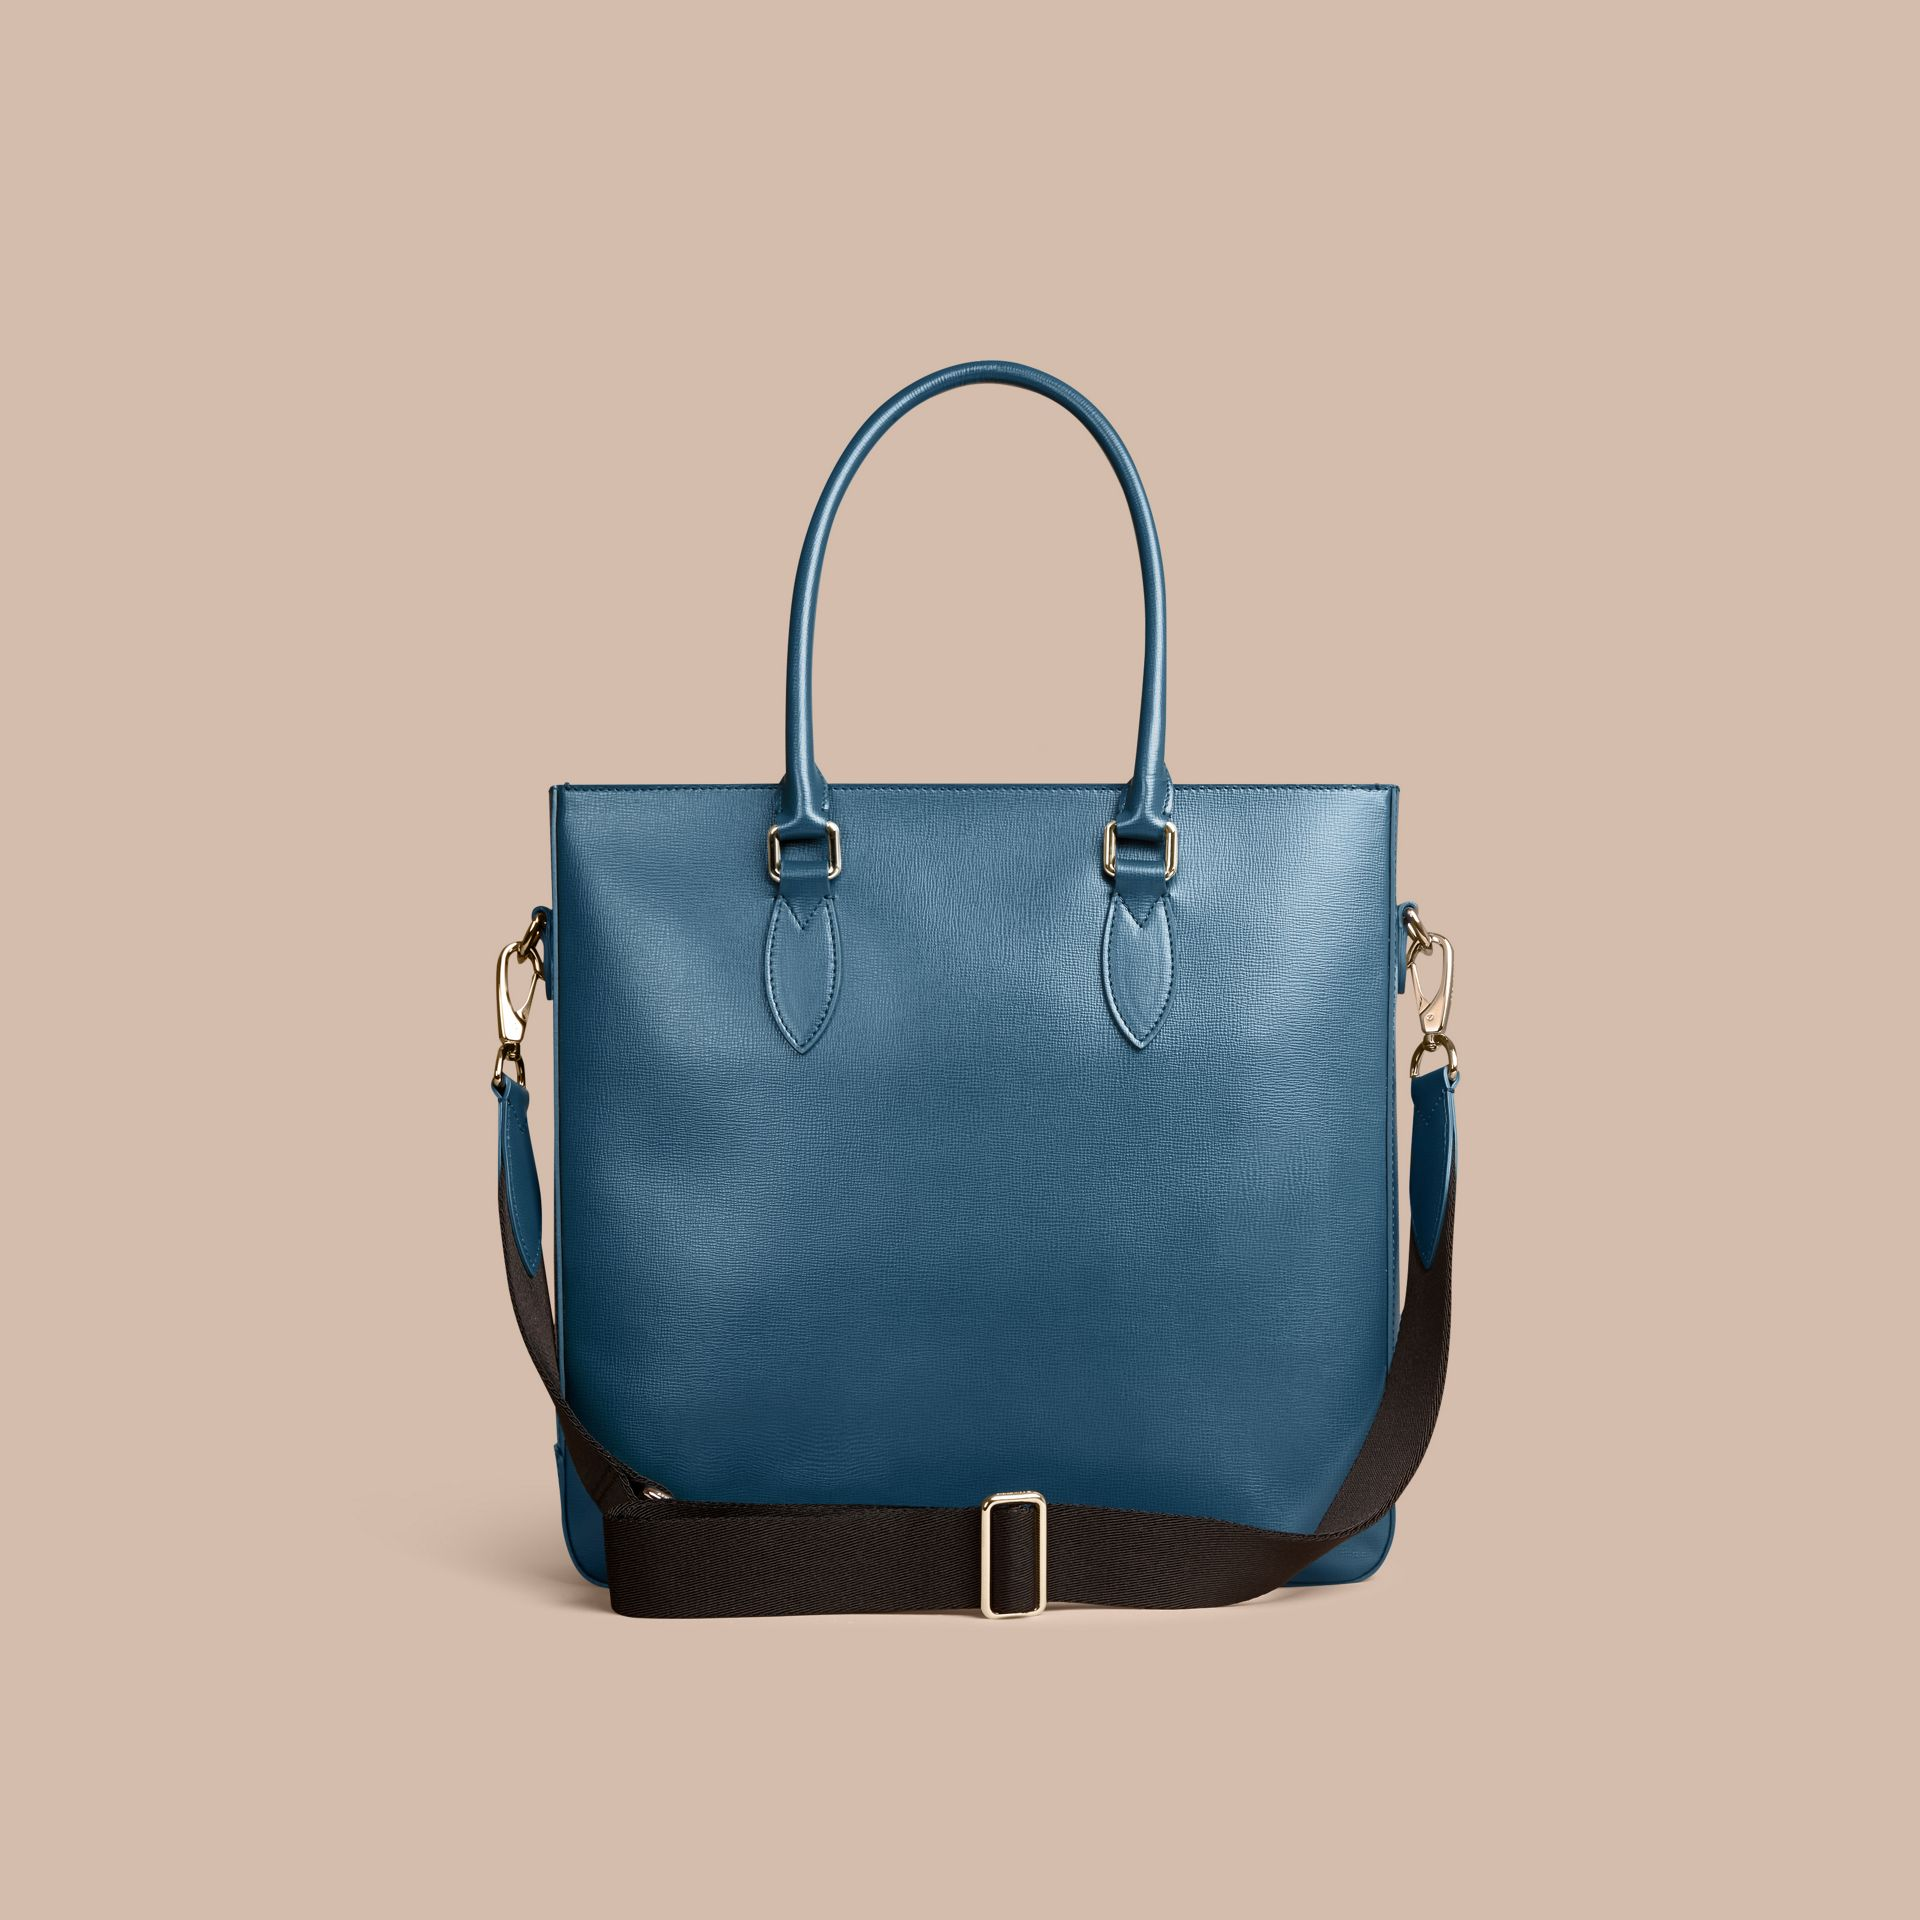 London Leather Tote Bag in Mineral Blue - gallery image 4